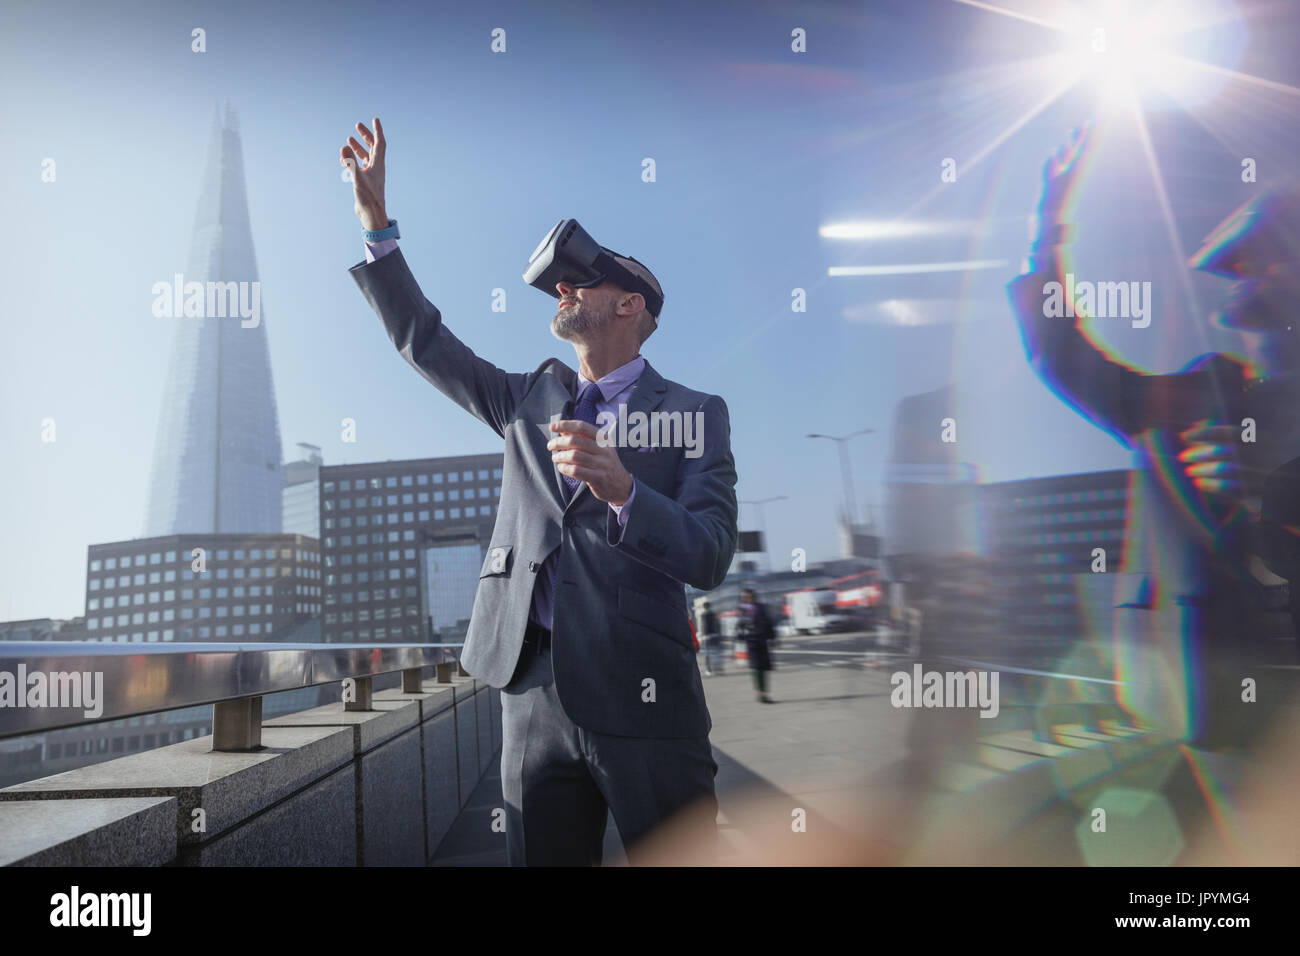 Businessman using virtual reality simulator glasses, reaching for sky on sunny urban bridge, London, UK - Stock Image